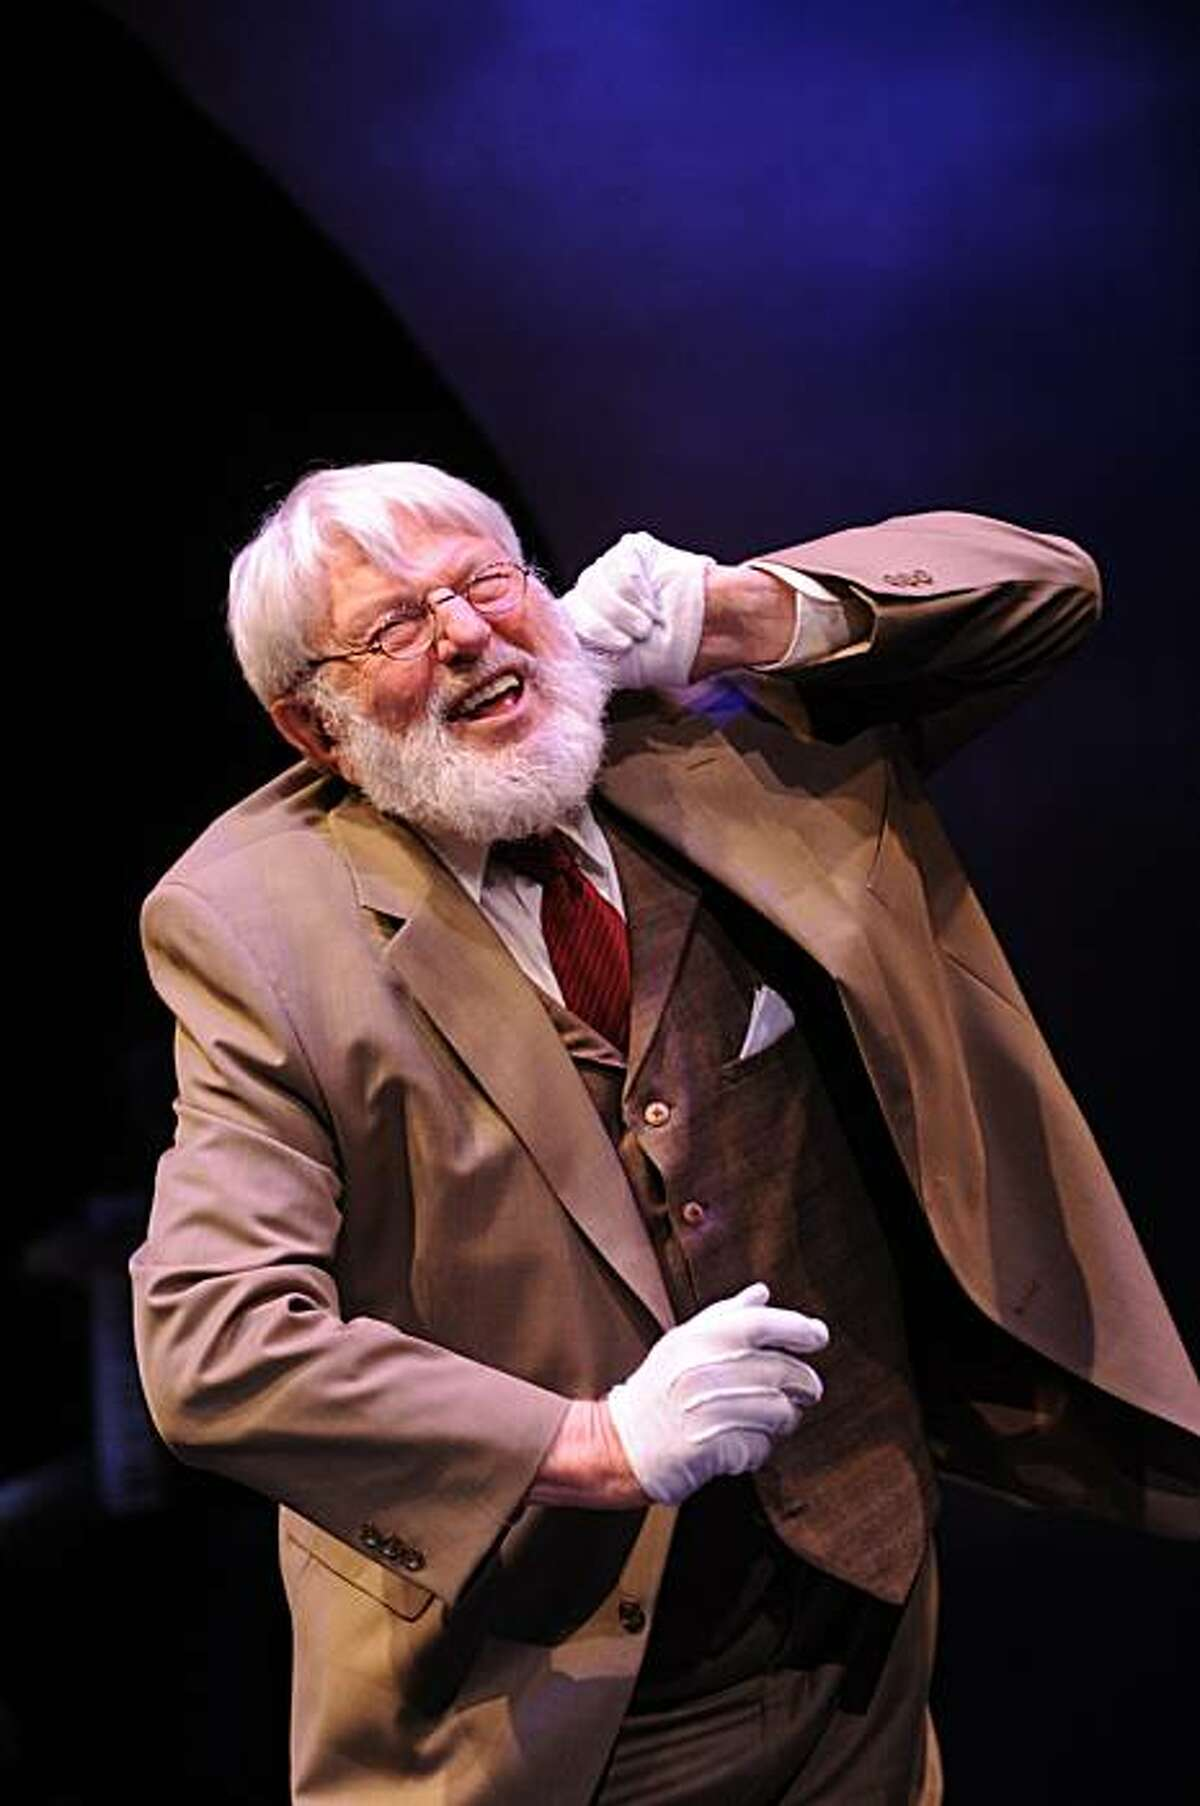 Theodore Bikel in Sholom Alecheim: Laughter Through Tears A life of stories with music and song Photo Credit: Courtesy Theodore Bikel